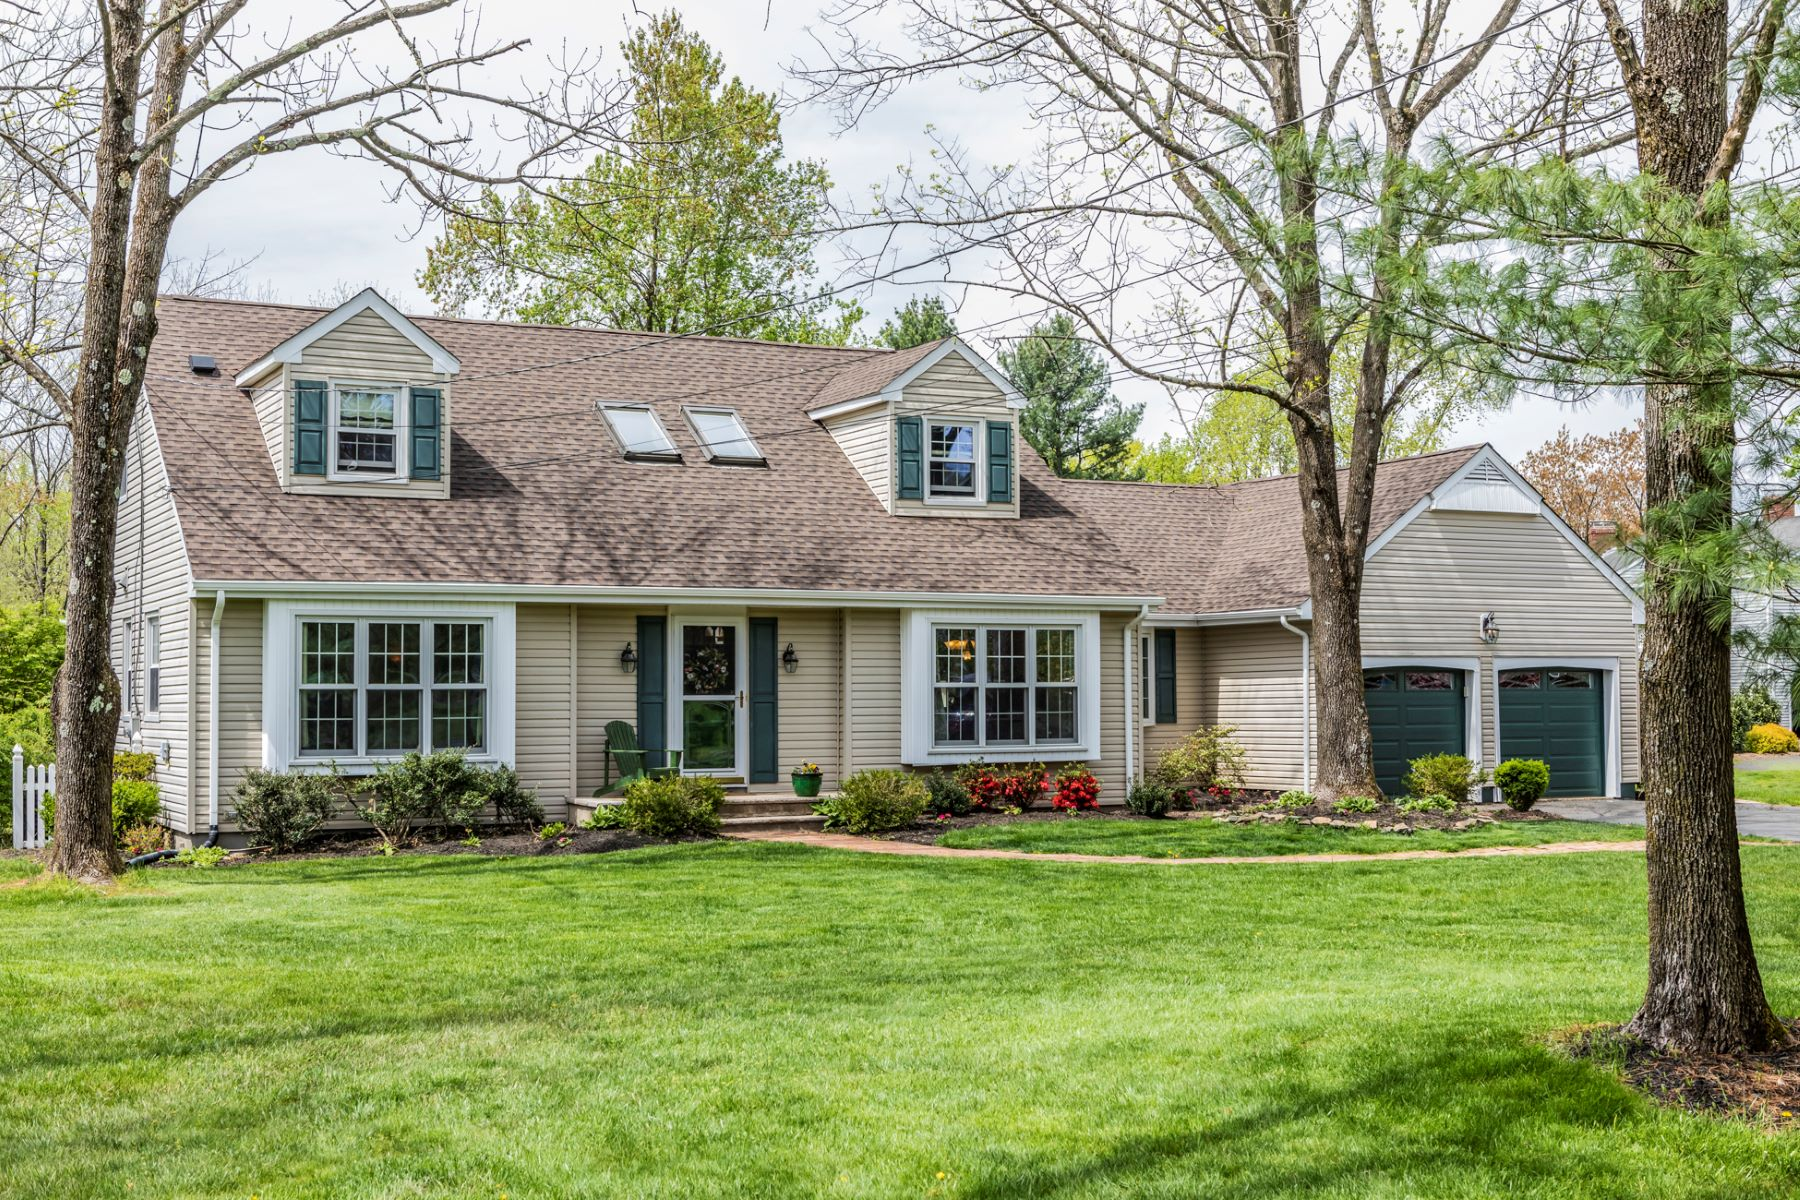 Single Family Home for Sale at Charming Cape Built For Fun 41 Knickerbocker Drive, Belle Mead, New Jersey 08502 United States